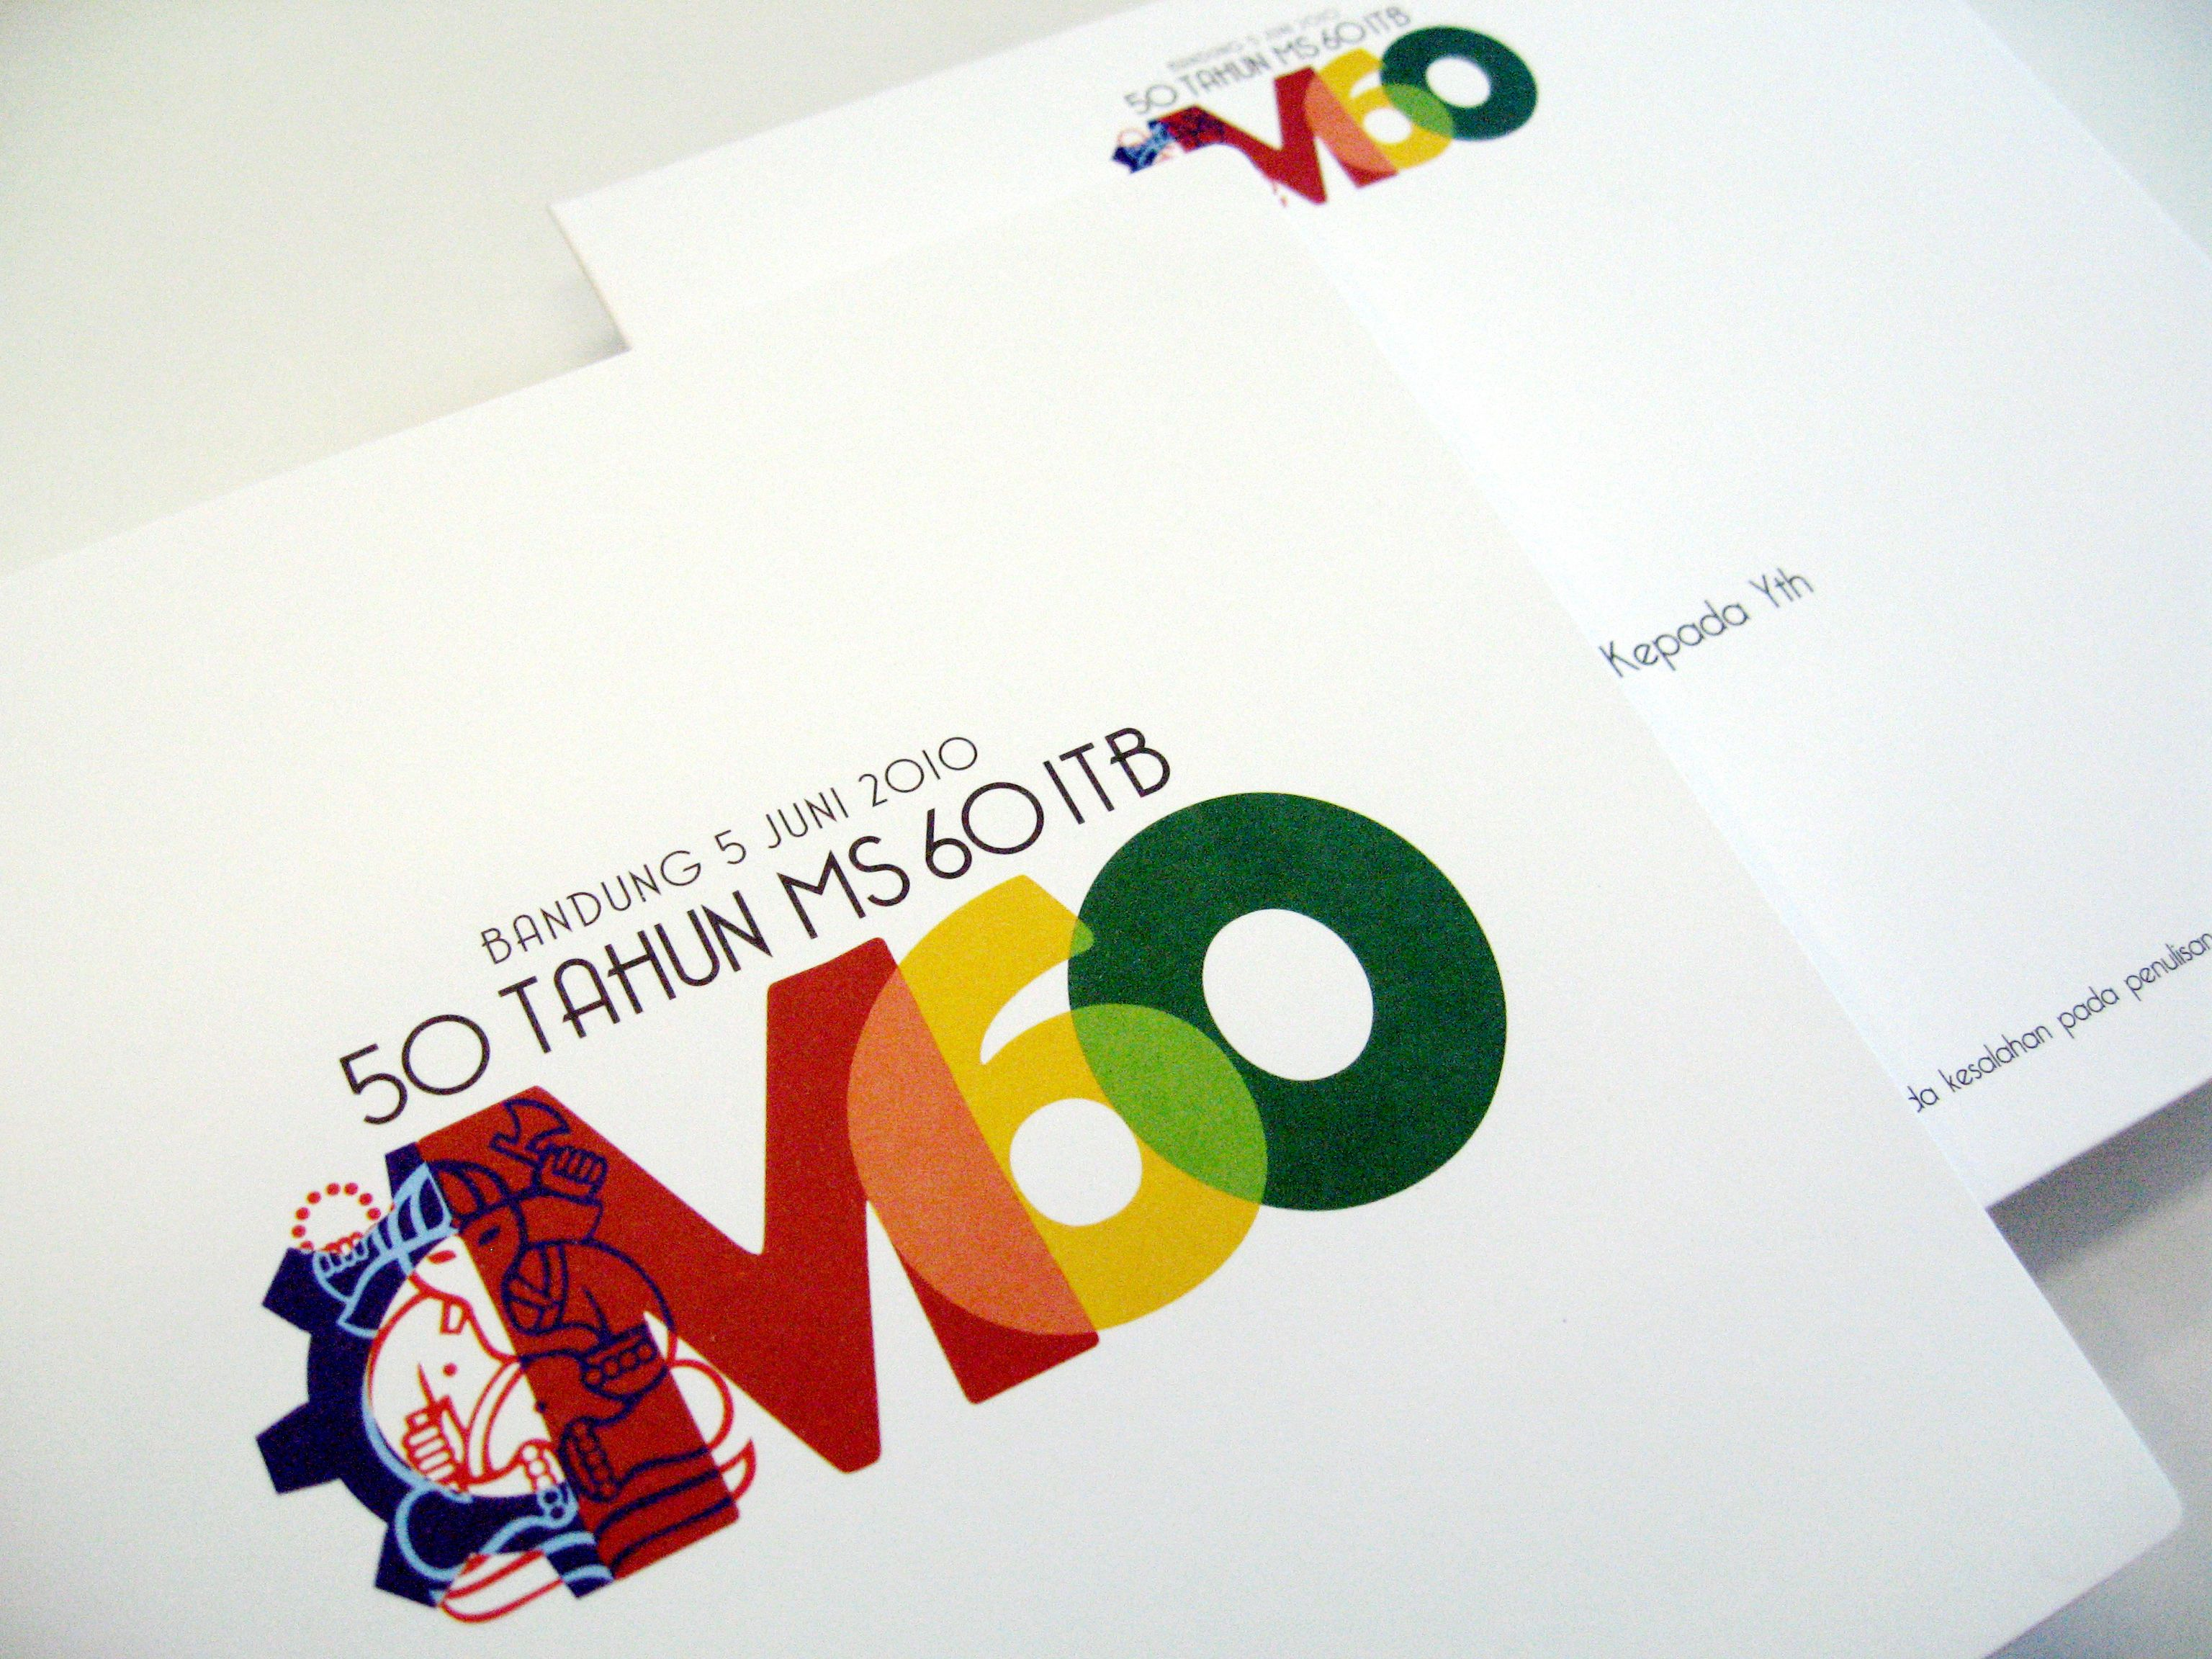 Logo for a 50th anniversary MS ITB